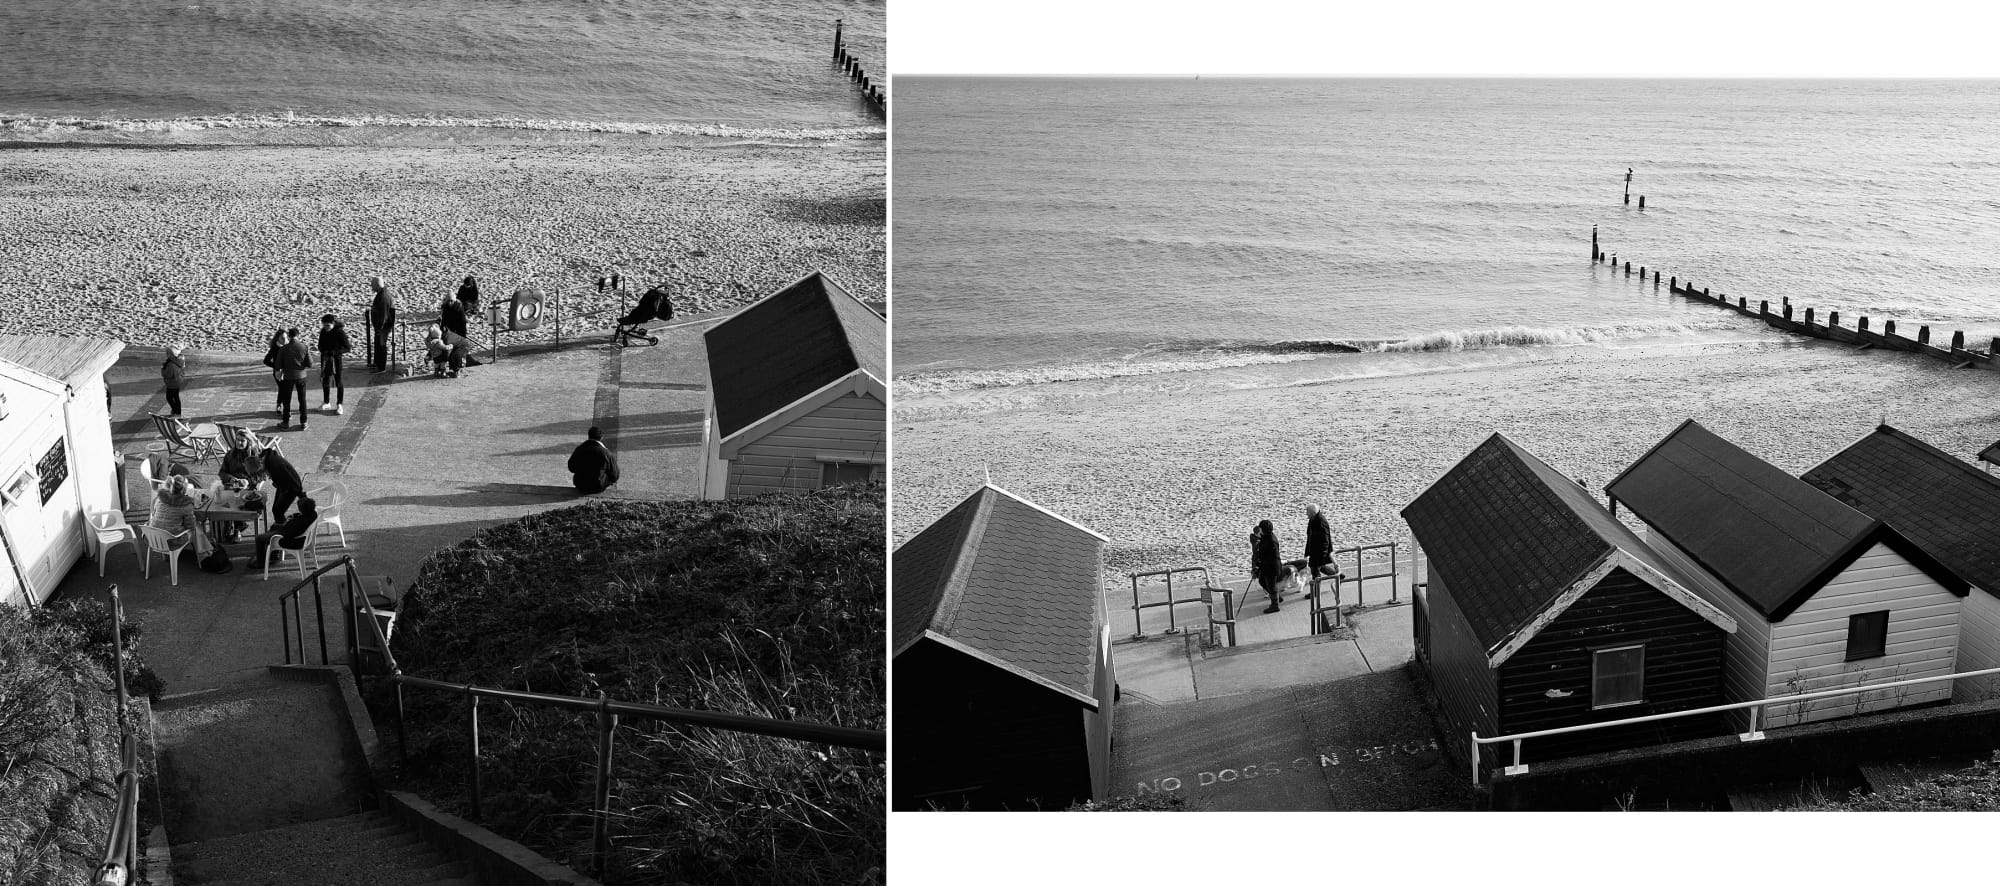 steps down to seafront cafe / looking down on seafront beach huts